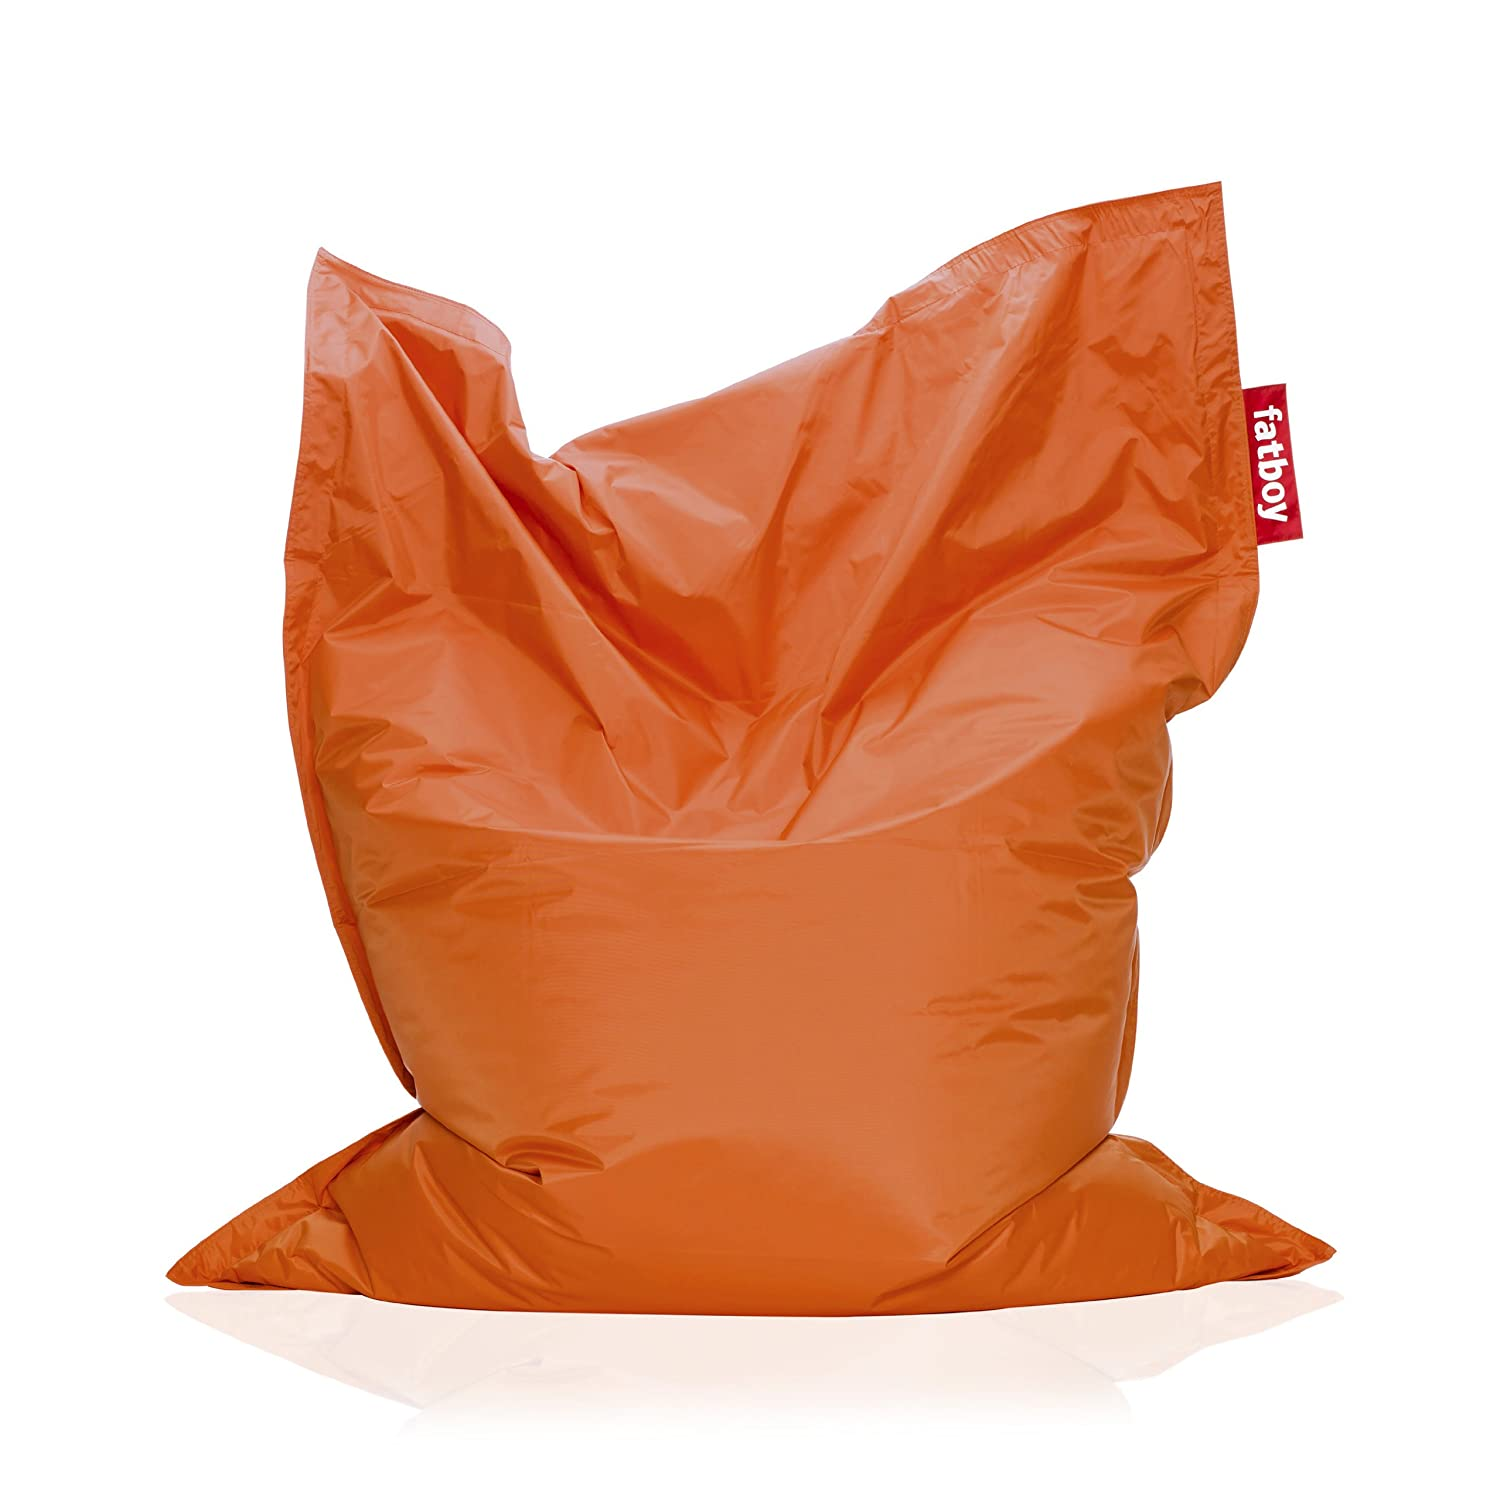 Fatboy The Original Bean Bag, Orange